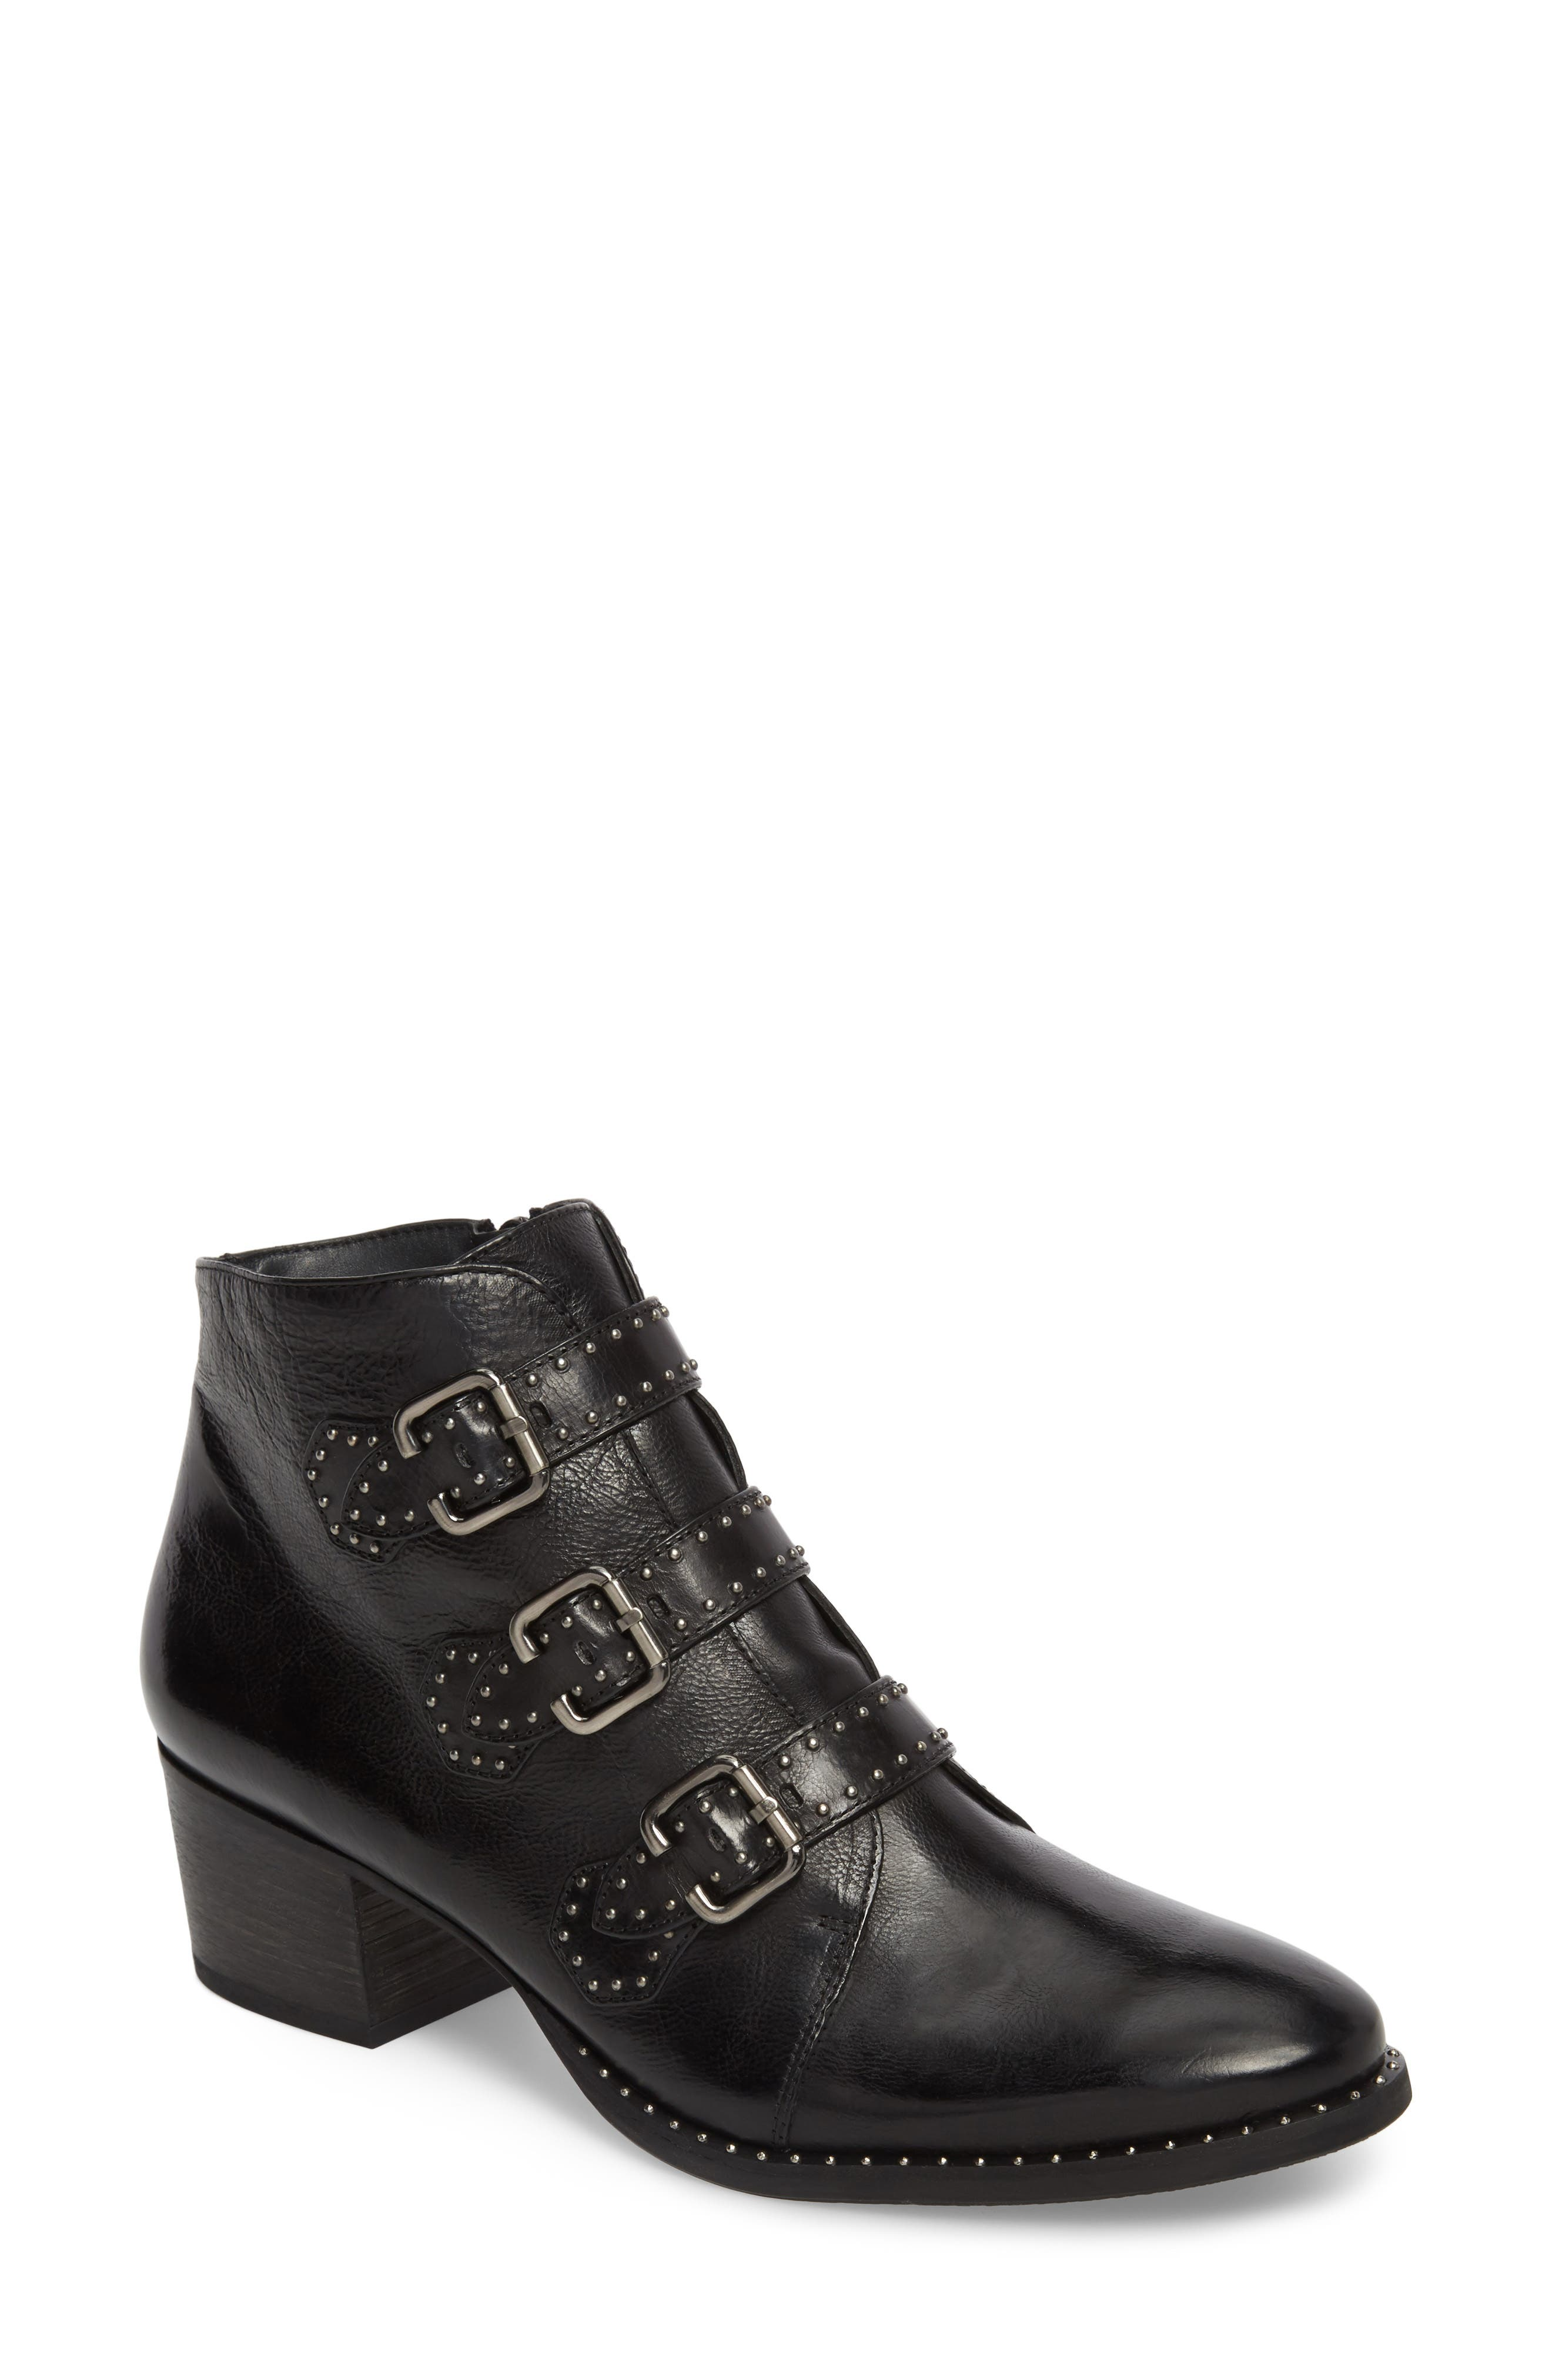 Soho Bootie,                         Main,                         color, BLACK LEATHER